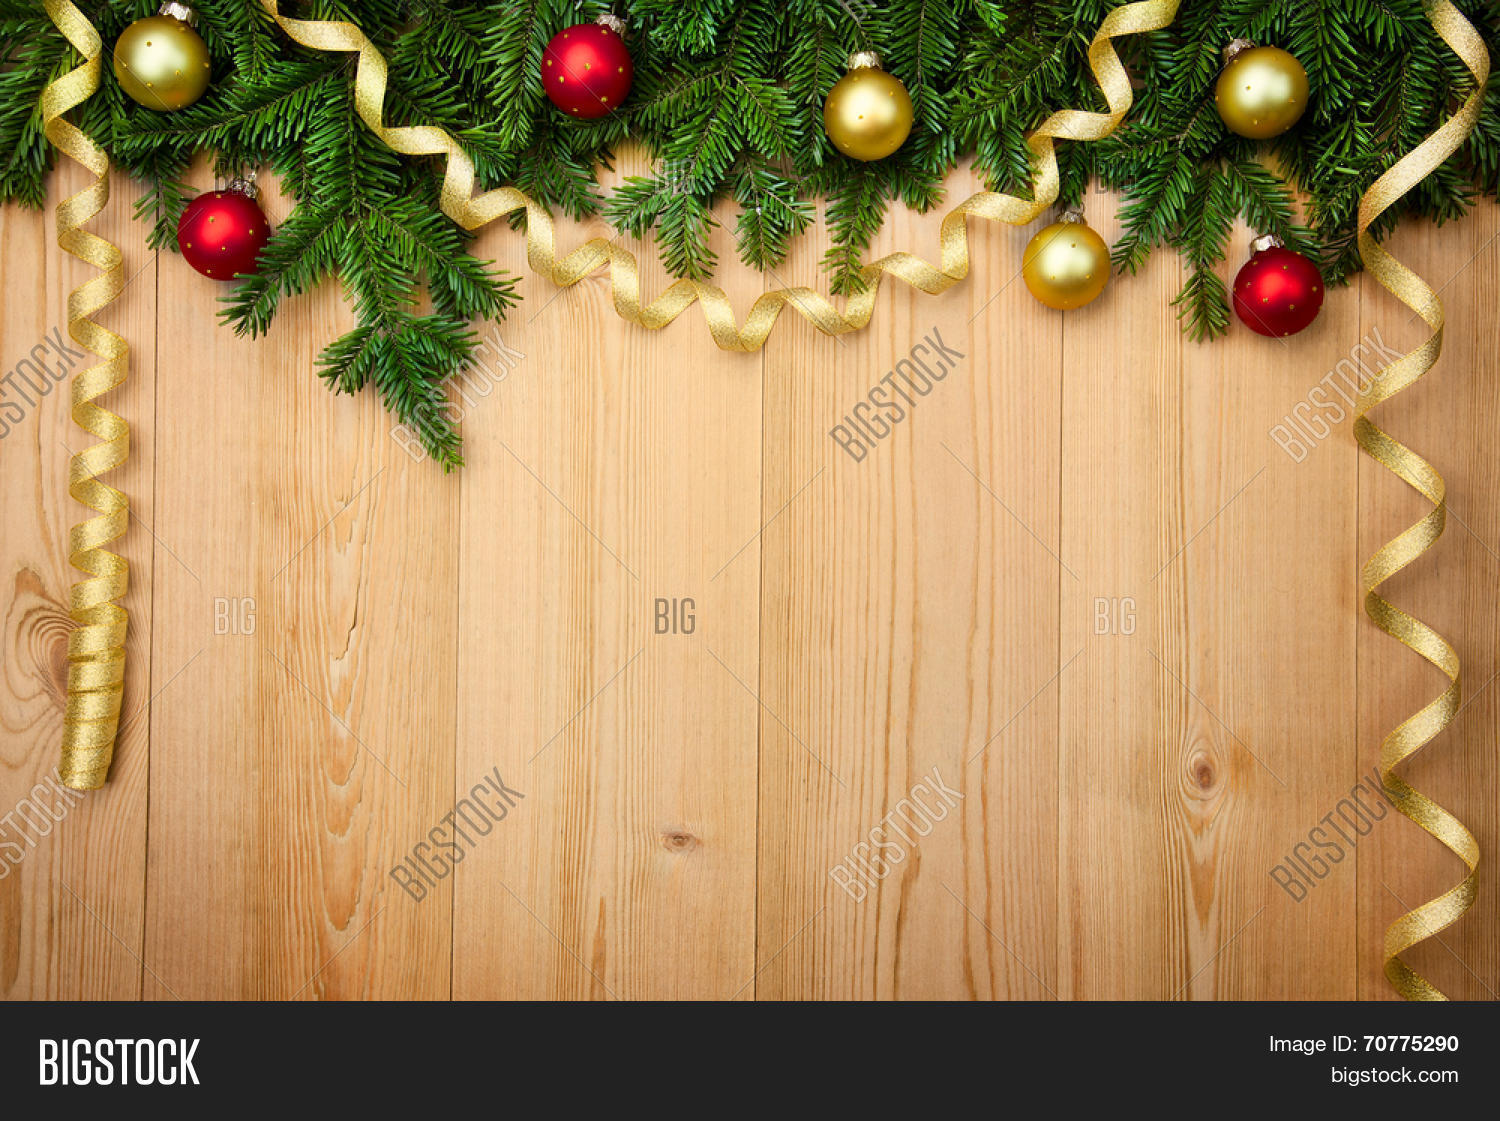 christmas background with fresh firtree baubles and ribbons on wood horizontal - How To Decorate A Christmas Tree With Ribbon Horizontally